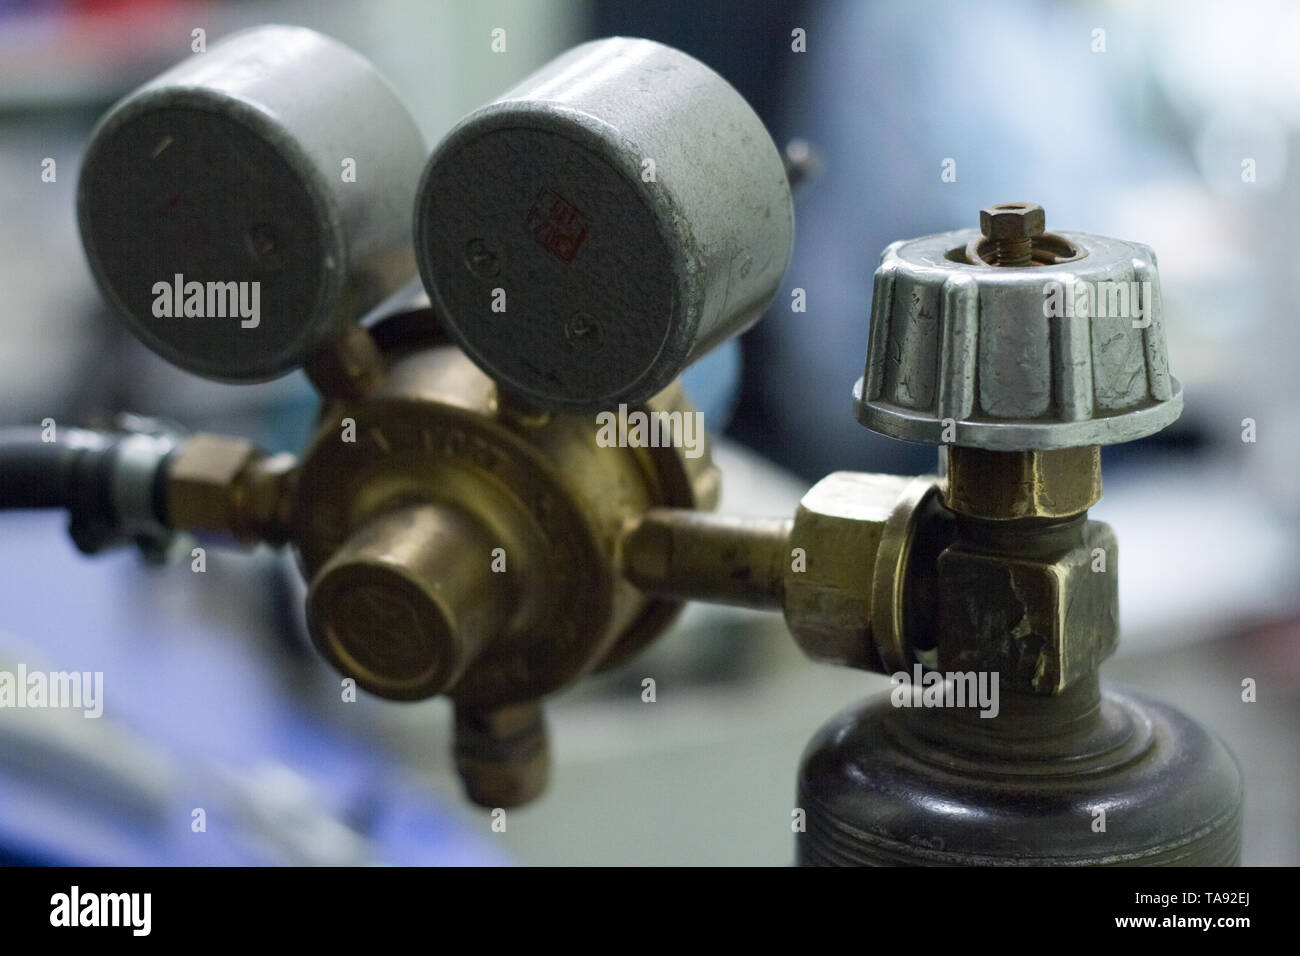 Close-up of a pressure sensors on an oxygen cylinder with inscriptions in Russian - Stock Image